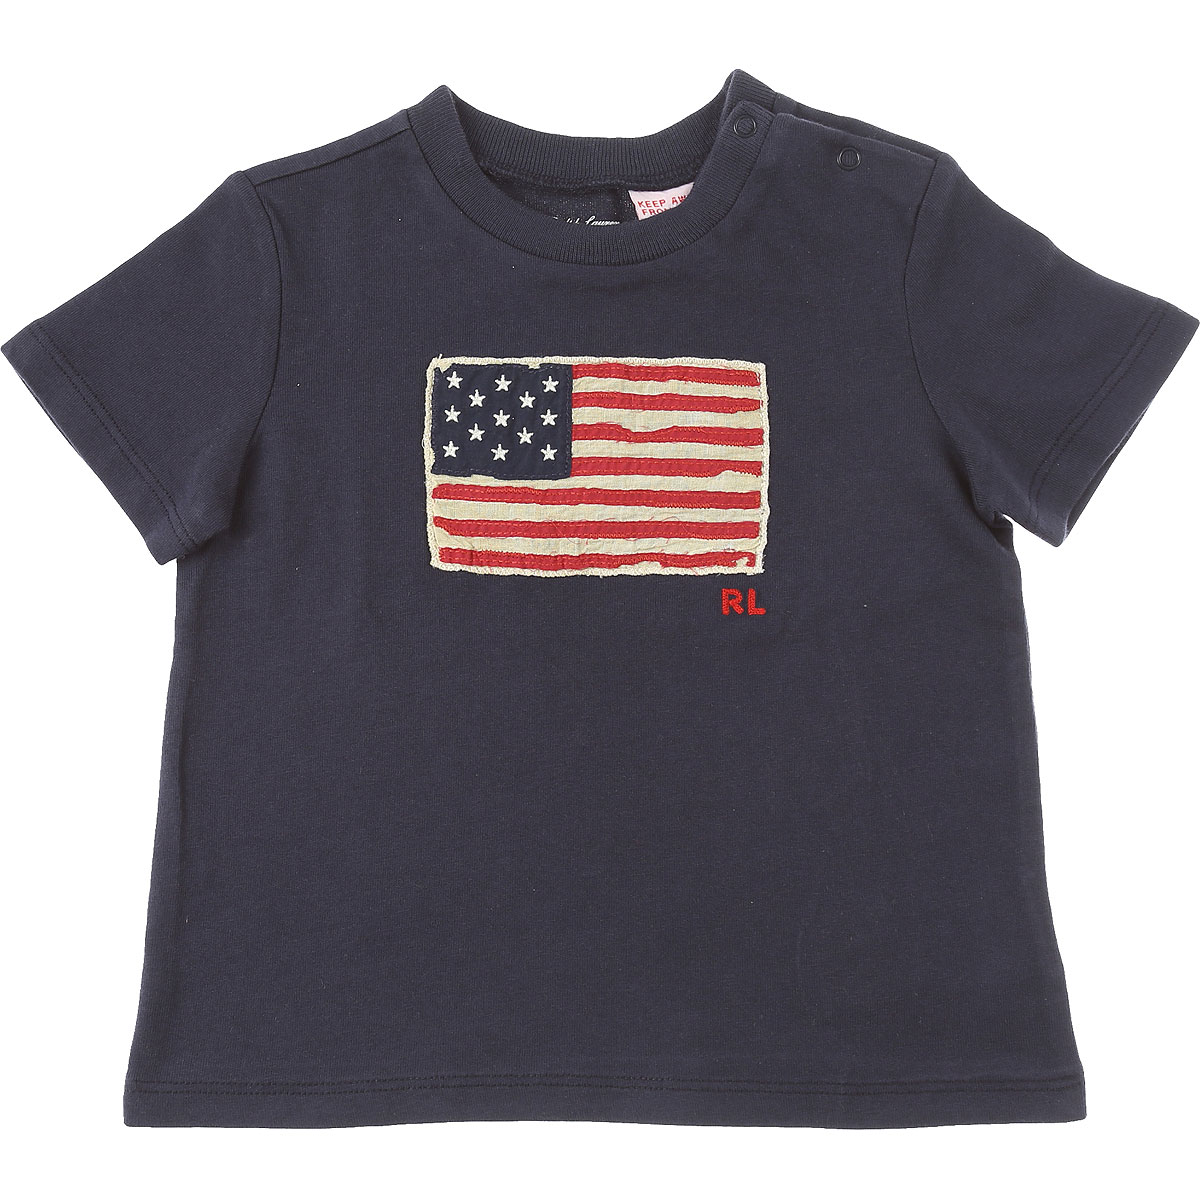 Ralph Lauren Baby T-Shirt for Boys On Sale in Outlet, Blue, Cotton, 2019, 12 M 9M